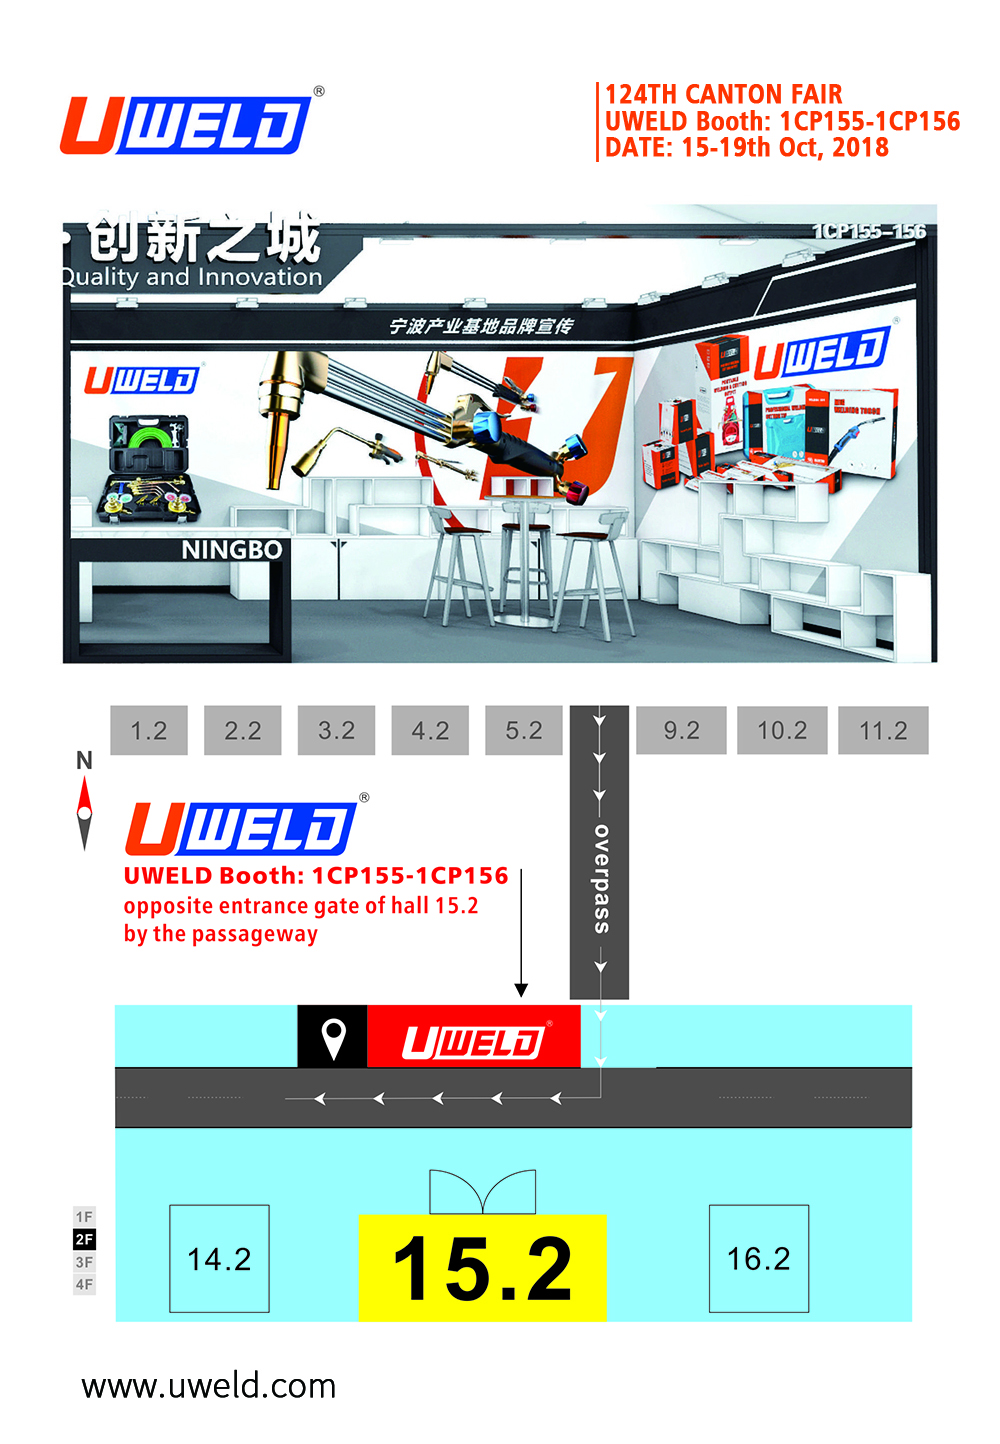 UWELD Canton Fair